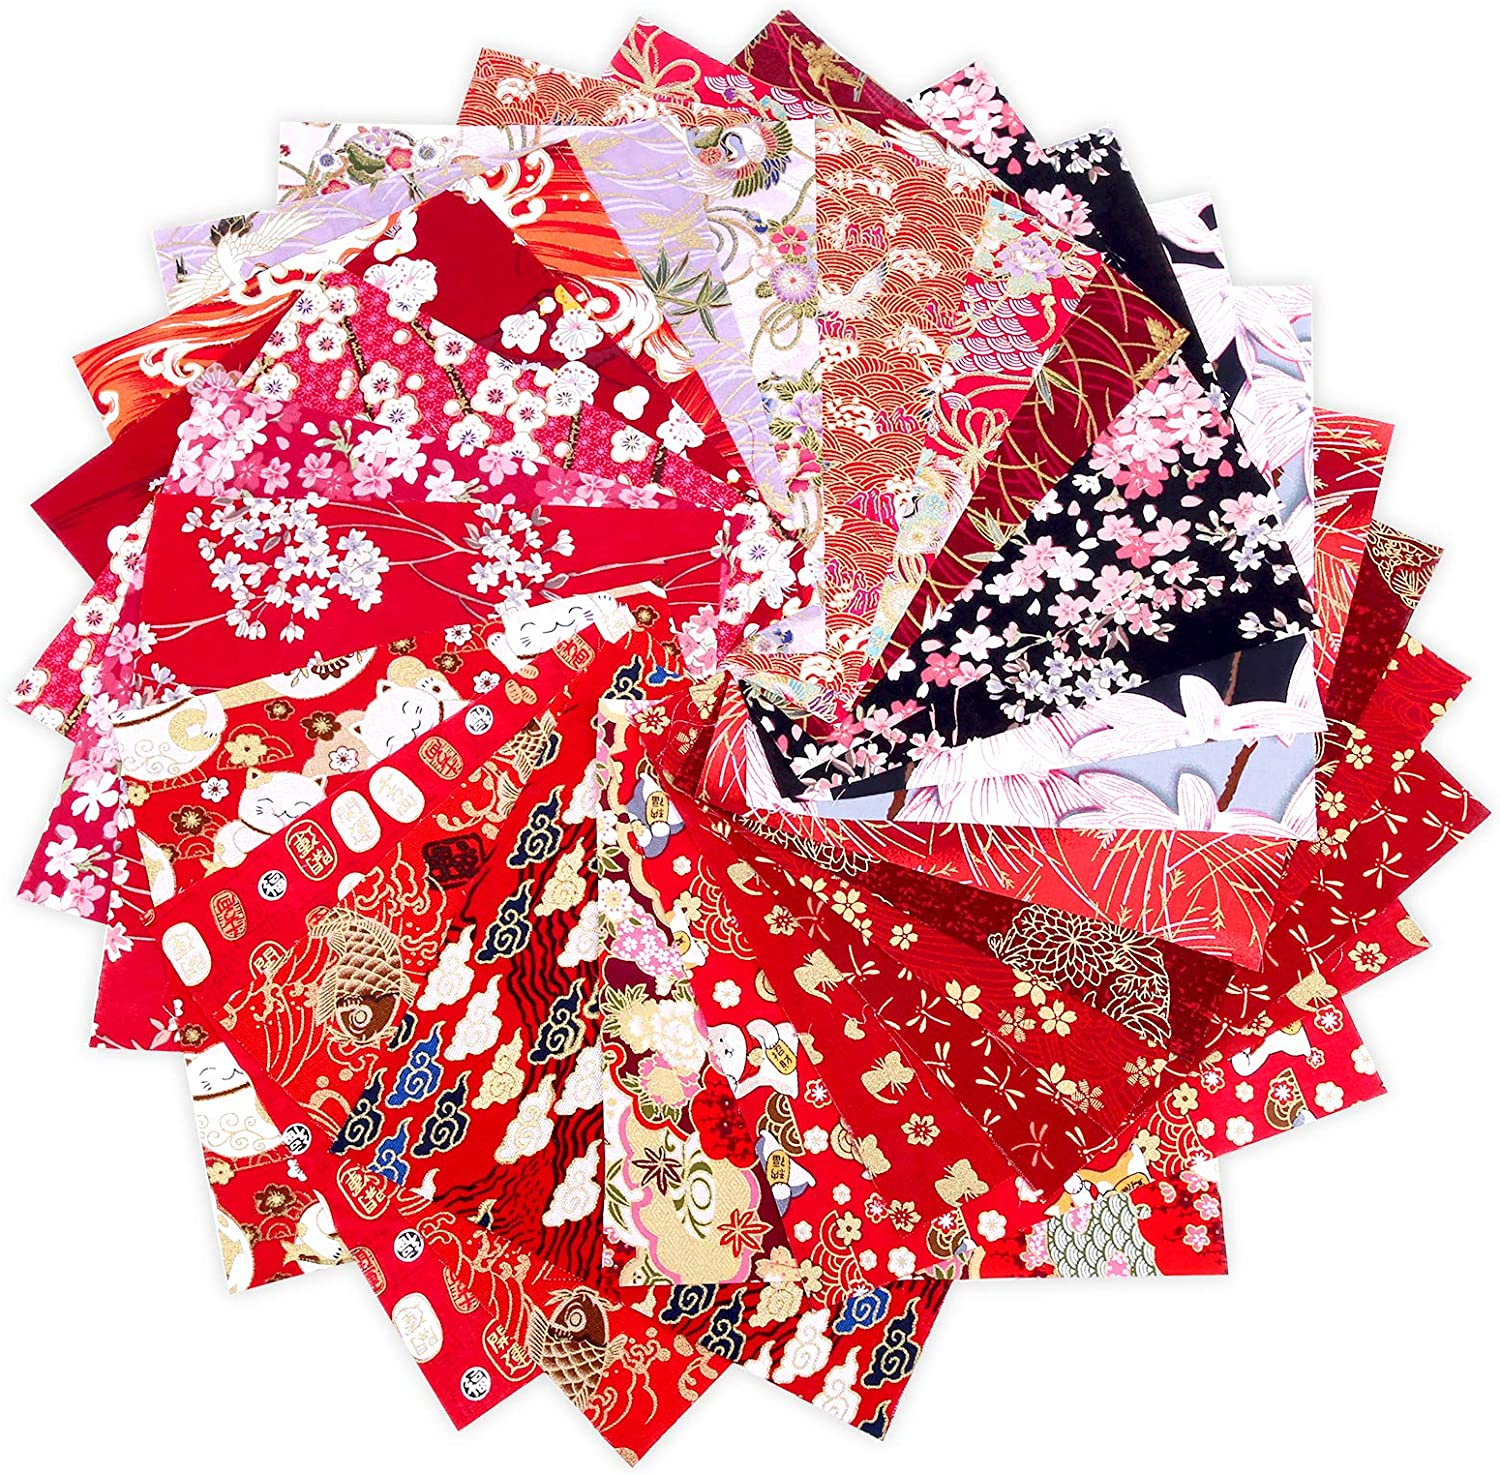 25 Sheet Quilting Fabric Cotton Fabric Different Pattern Cloths Fabric for Sewing Pre-Cut Quilt Sewing Supplies Patchwork for DIY Scrapbooking Art Craft Supplies (7.87x7.87 in)